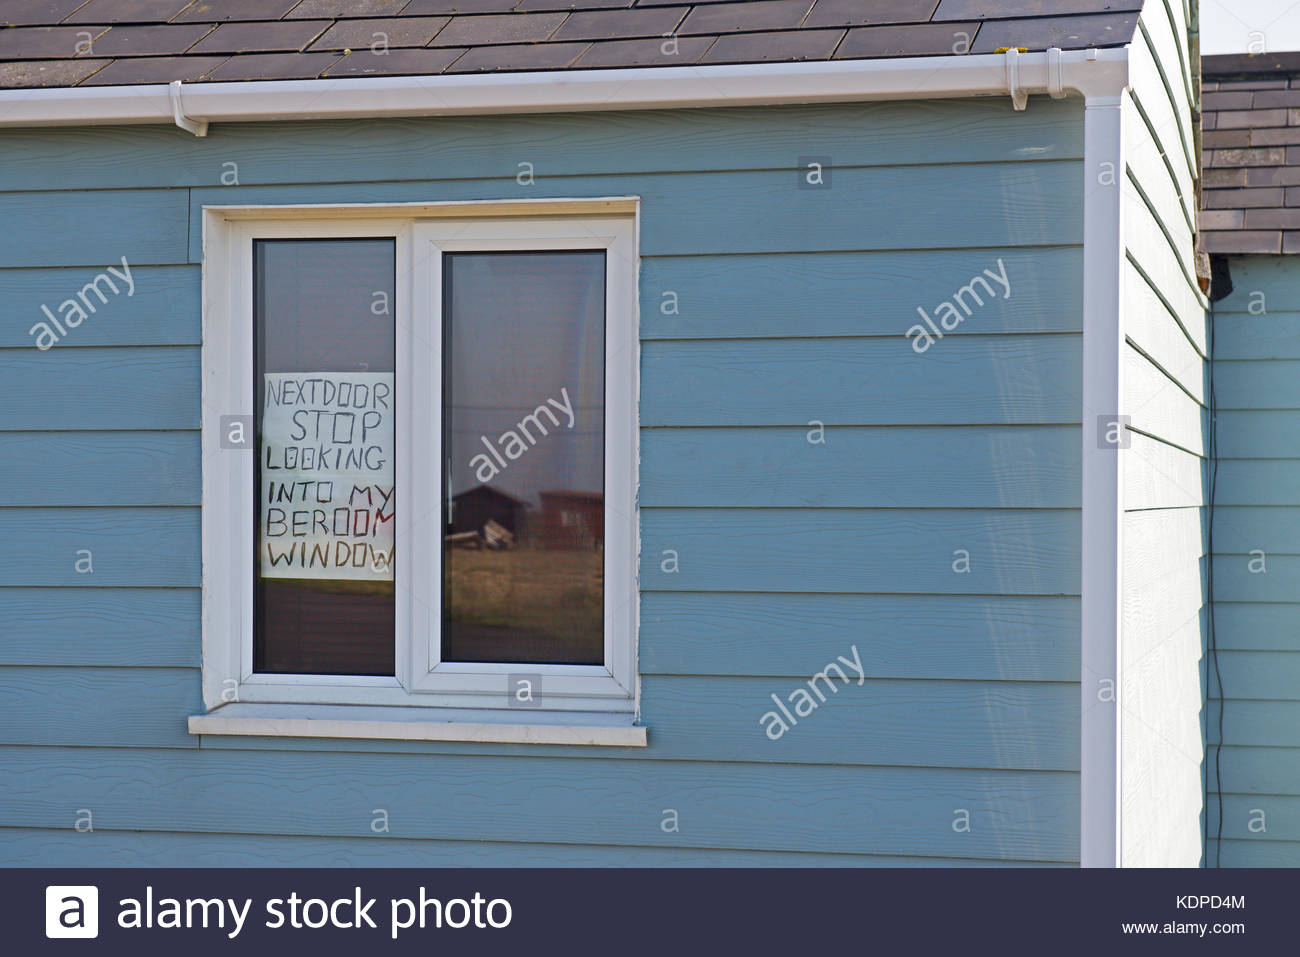 sign-on-window-of-wooden-chalet-warning-neighbour-not-to-look-into-KDPD4M.jpg